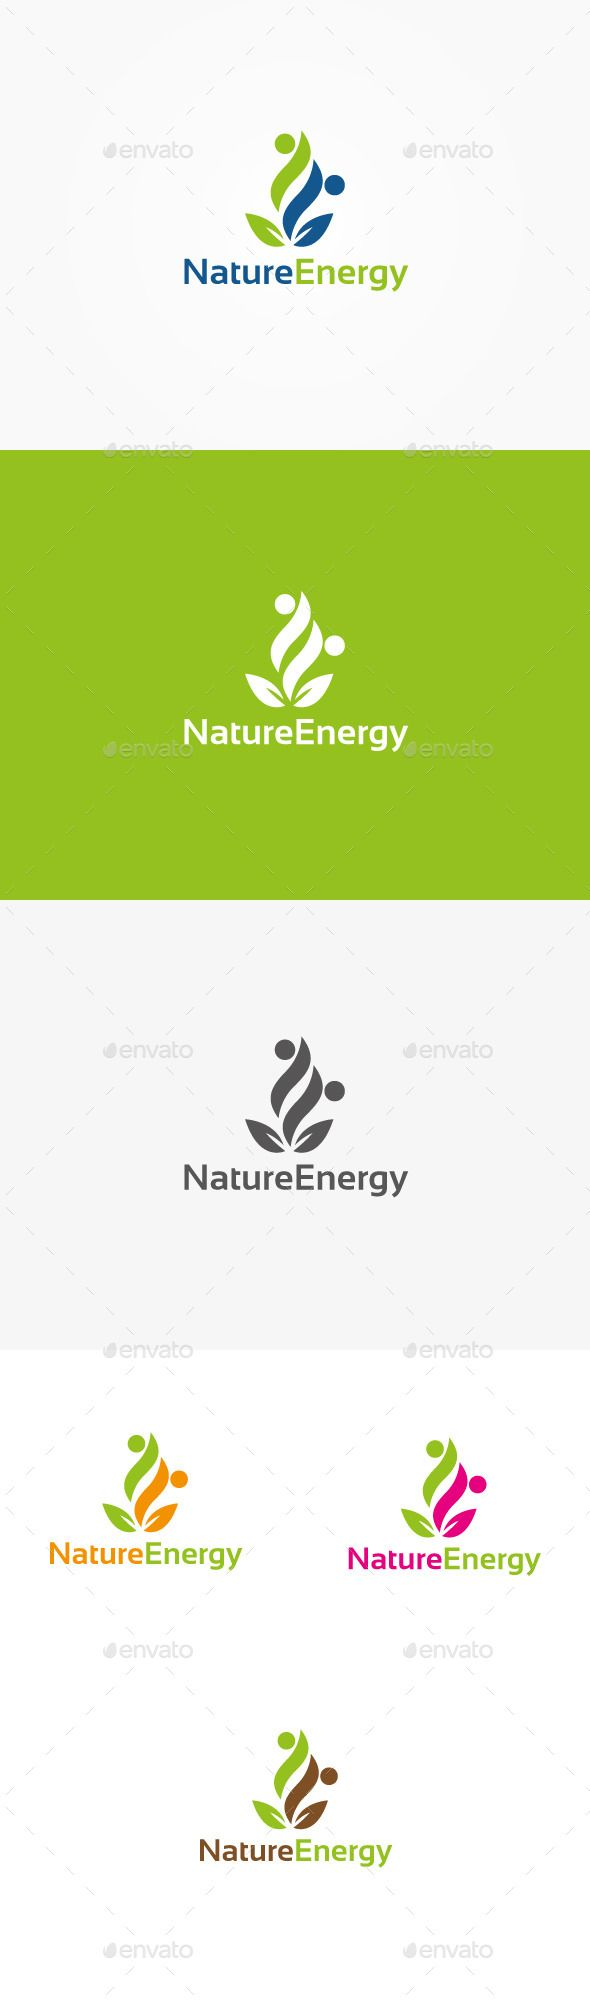 Nature Energy - Logo Design Template Vector #logotype Download it here: http://graphicriver.net/item/nature-energy-logo/9942886?s_rank=1450?ref=nesto